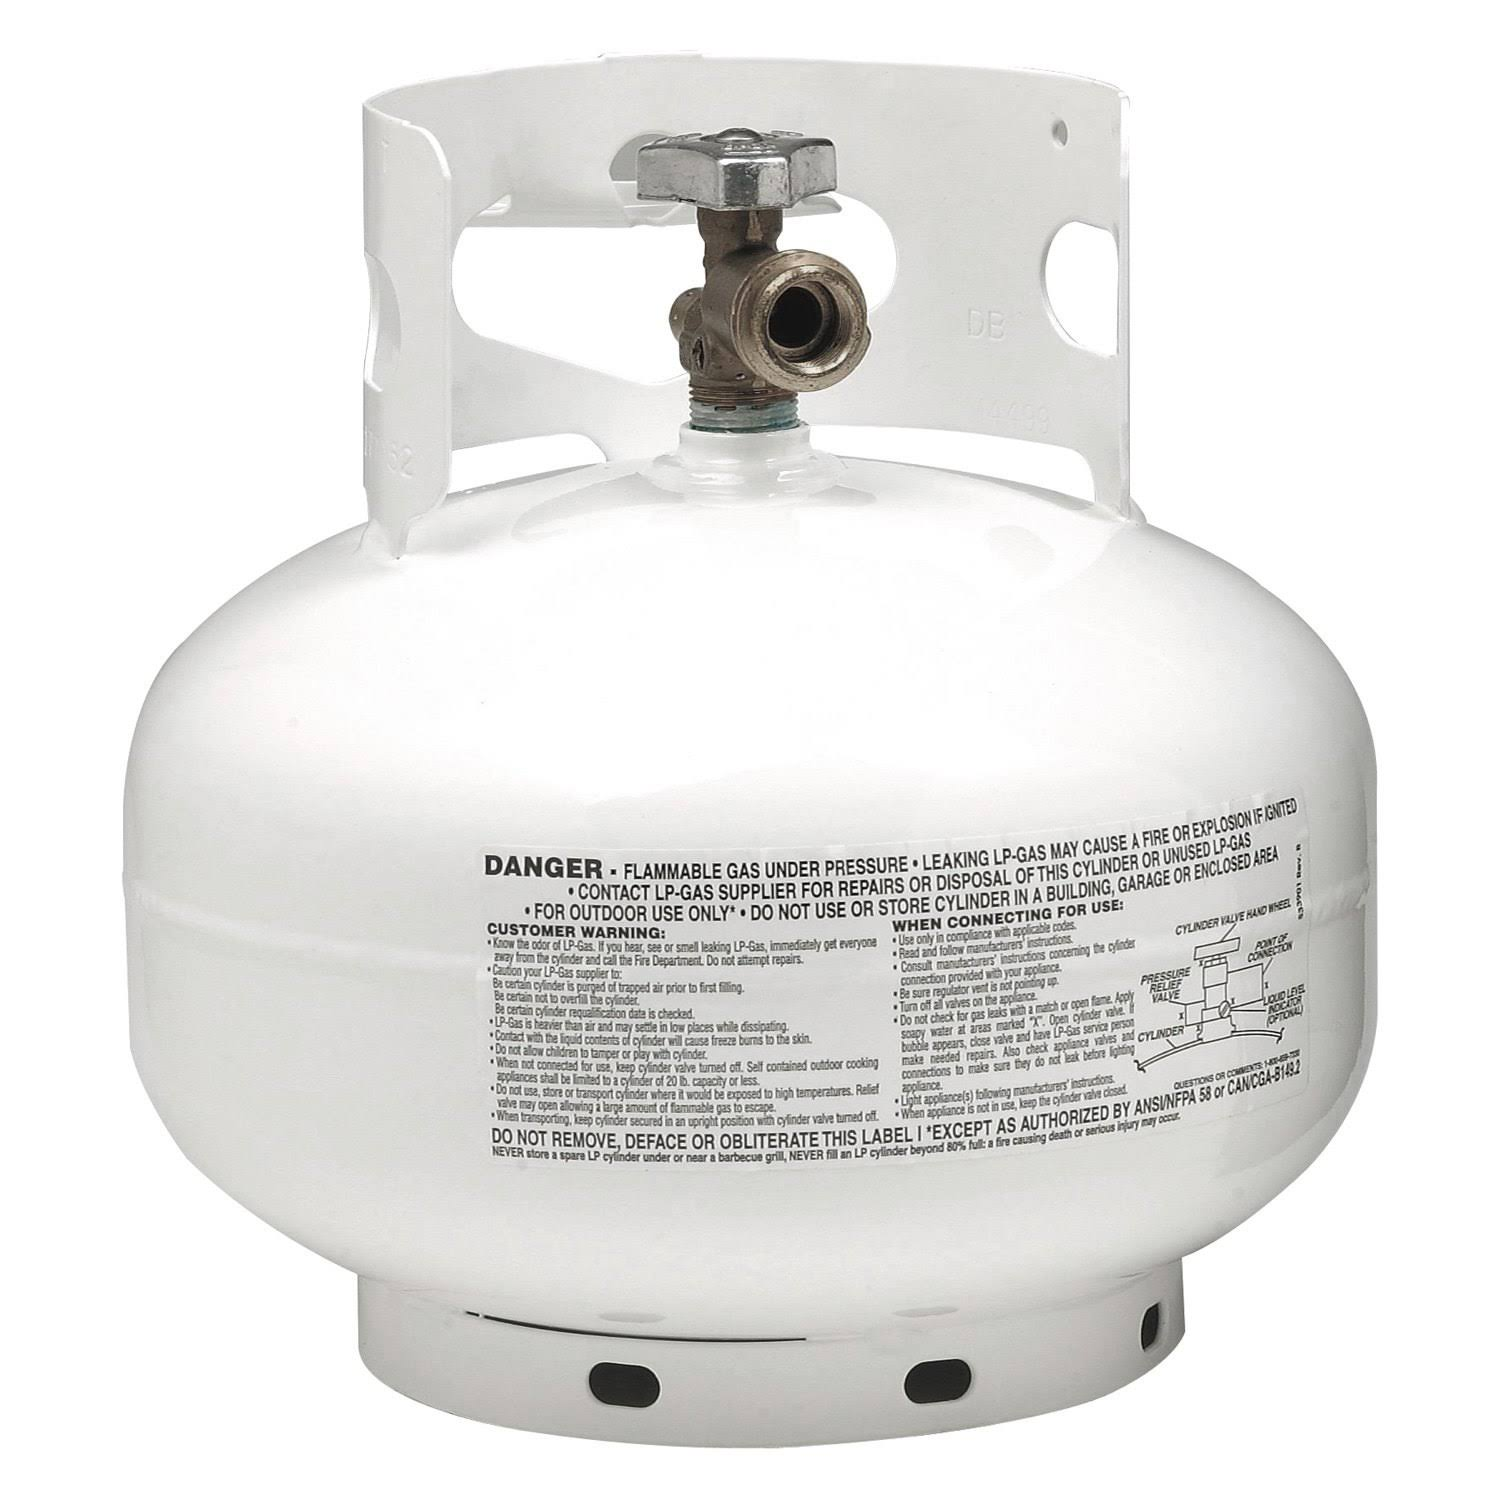 Manchester Tank 103931 Propane Cylinder - White